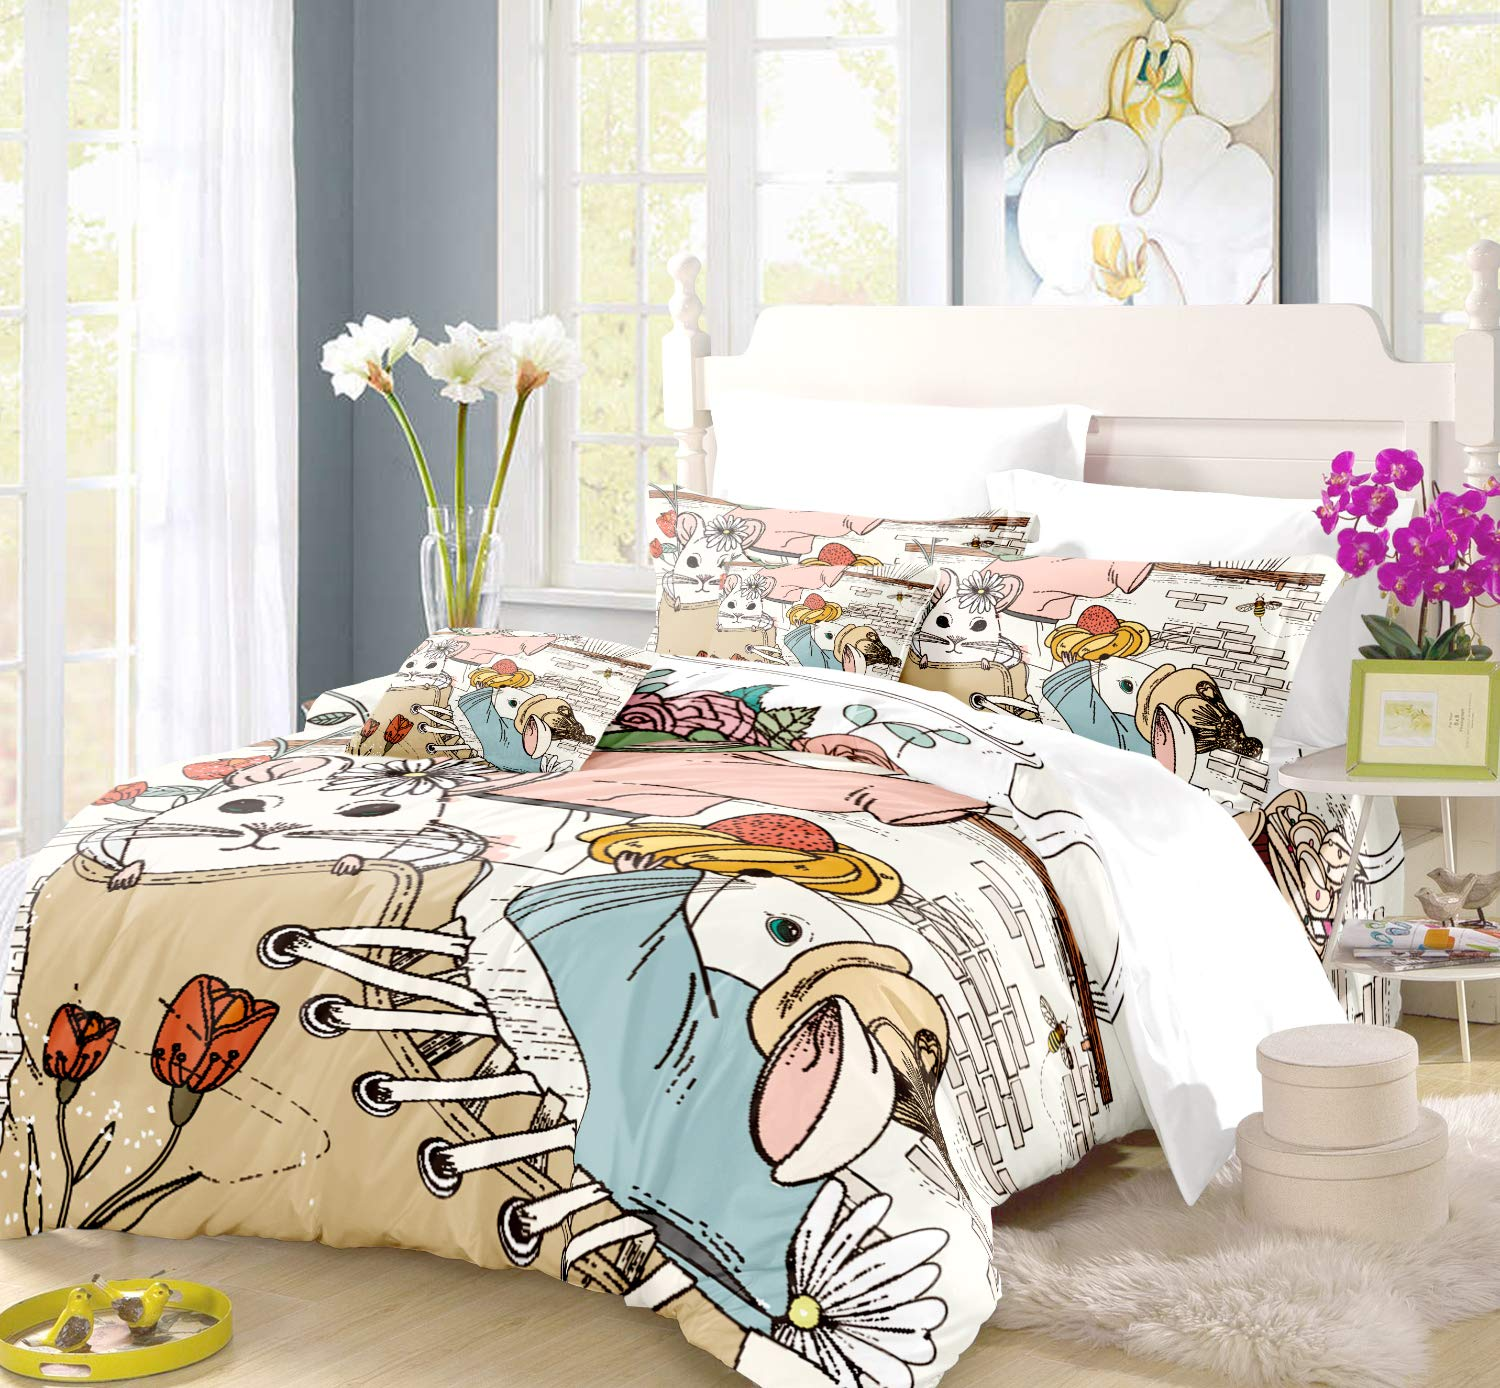 REALIN Three Mice Duvet Cover Set Mouse in Boots Bedding Lovely Balcony Family of Three Bed Sets,2/3/4PCS Microfiber Quilt Covers/Sheets/Pillow Shams,Twin/Full/Queen/King Size